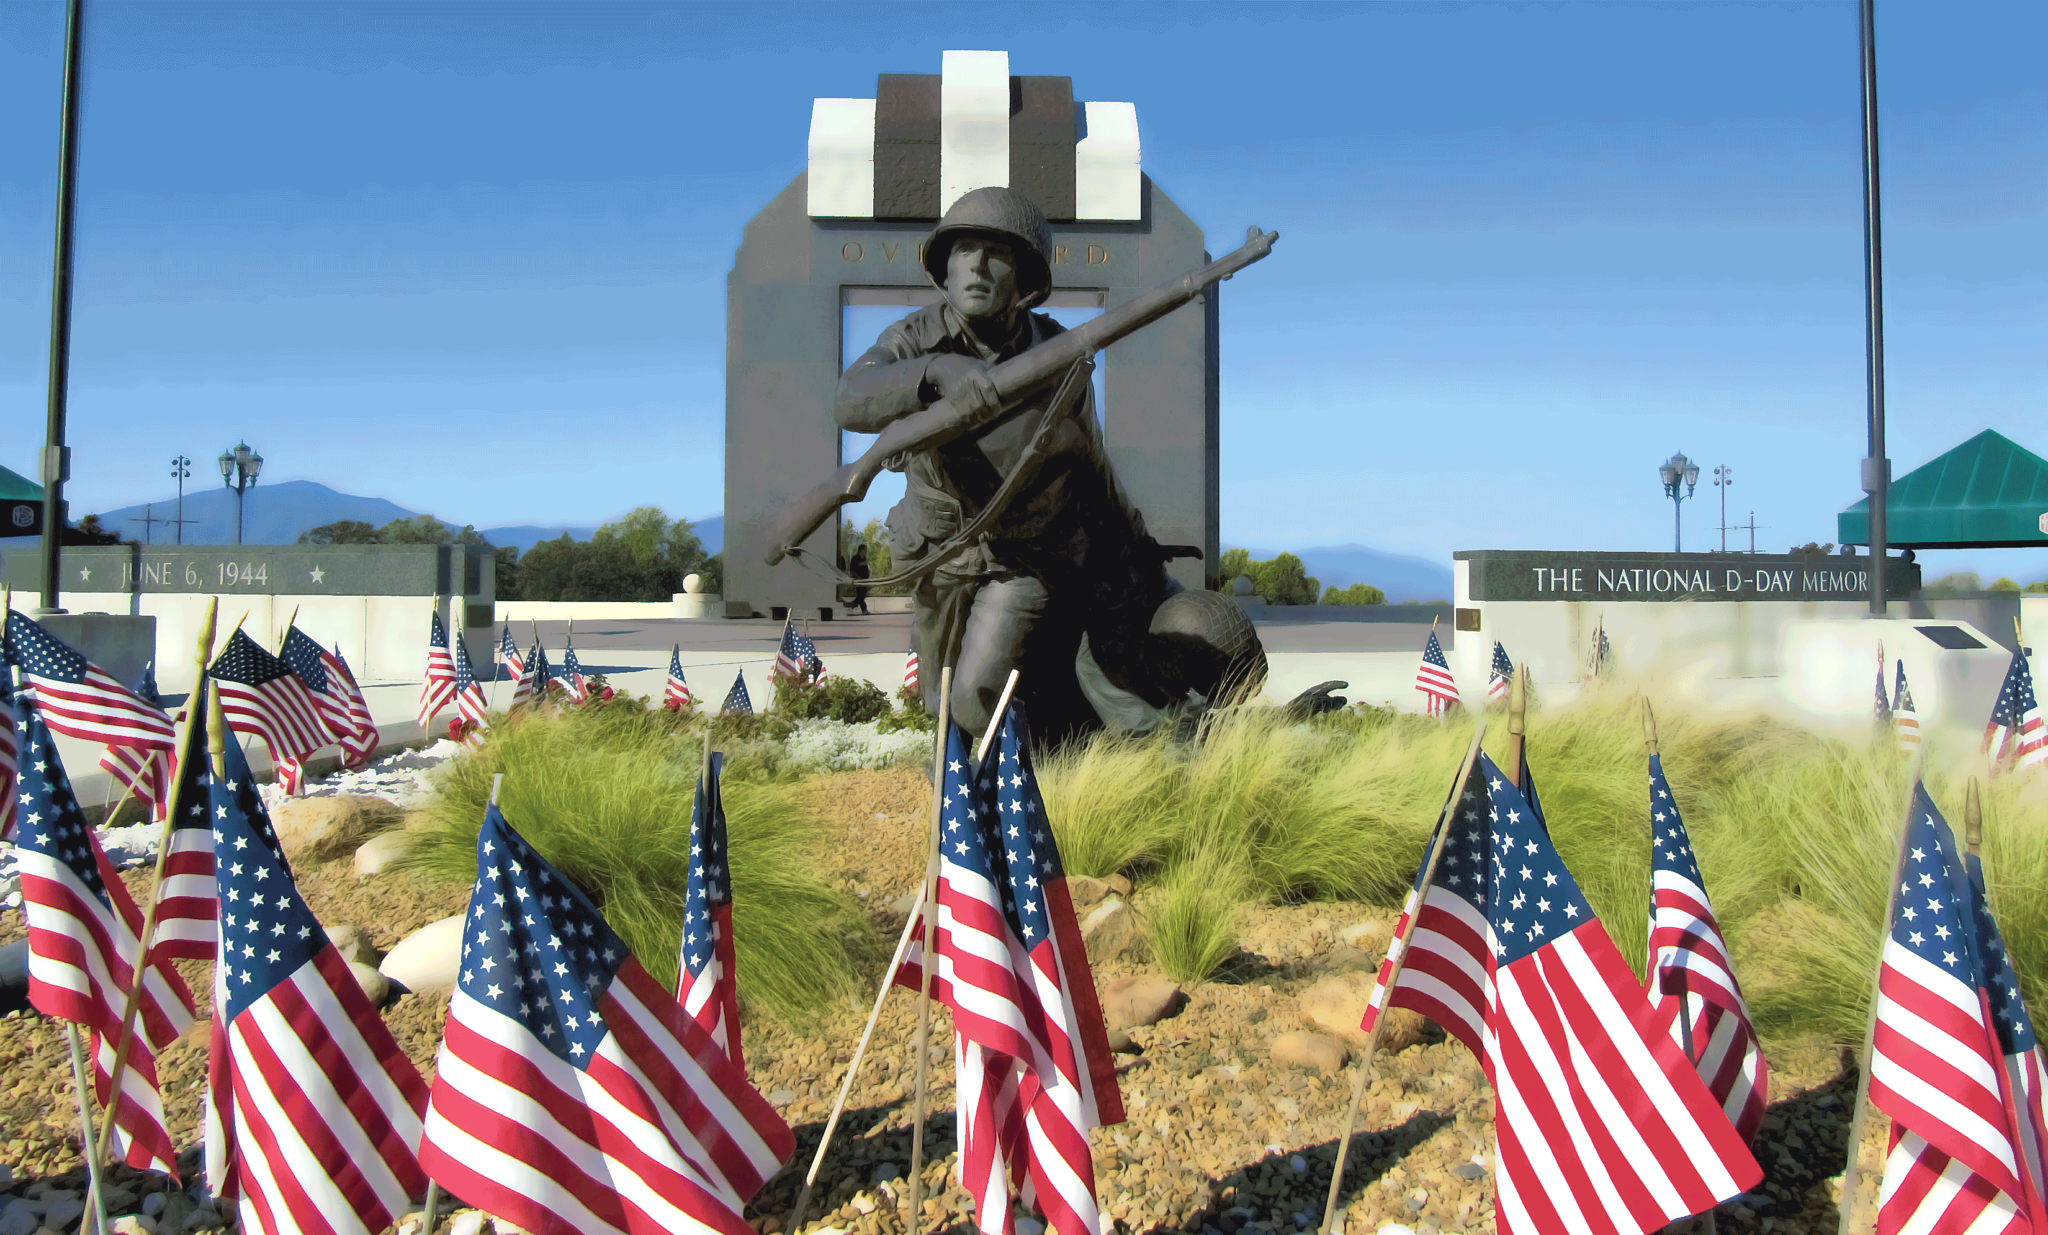 National D-Day Memorial. Photograph by Ian Patrick/Alamy.